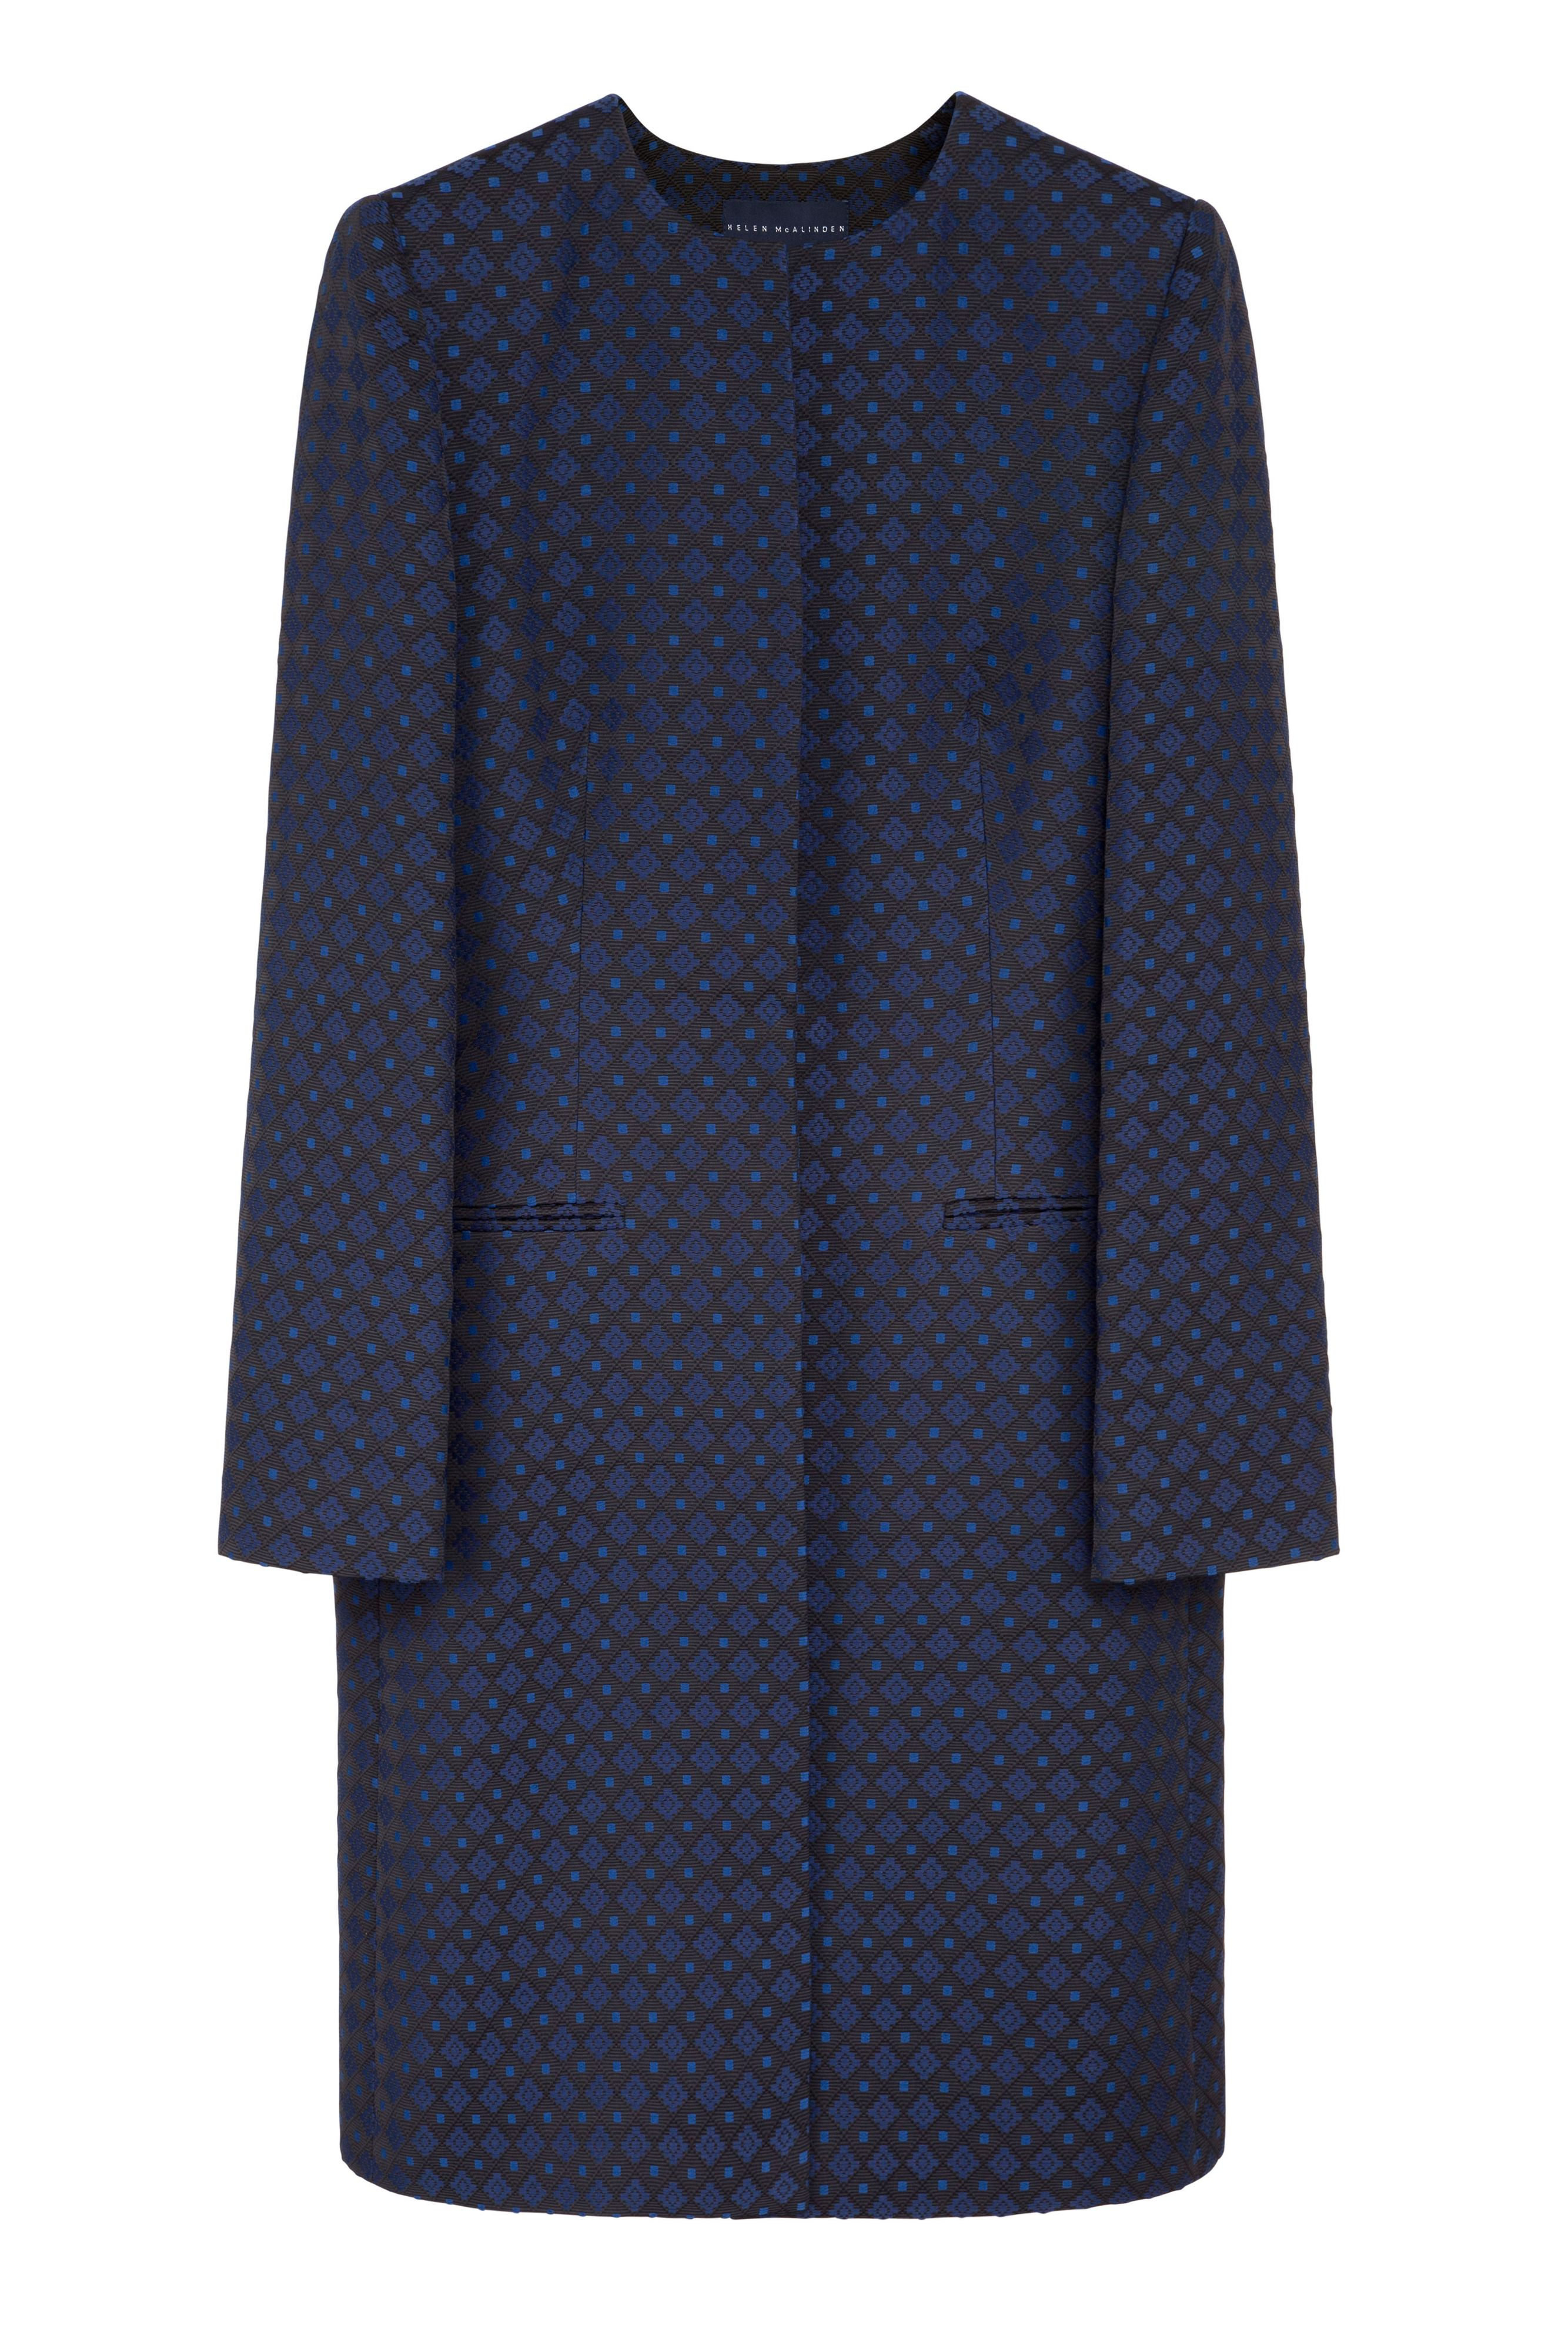 Collarless geometric helen coat